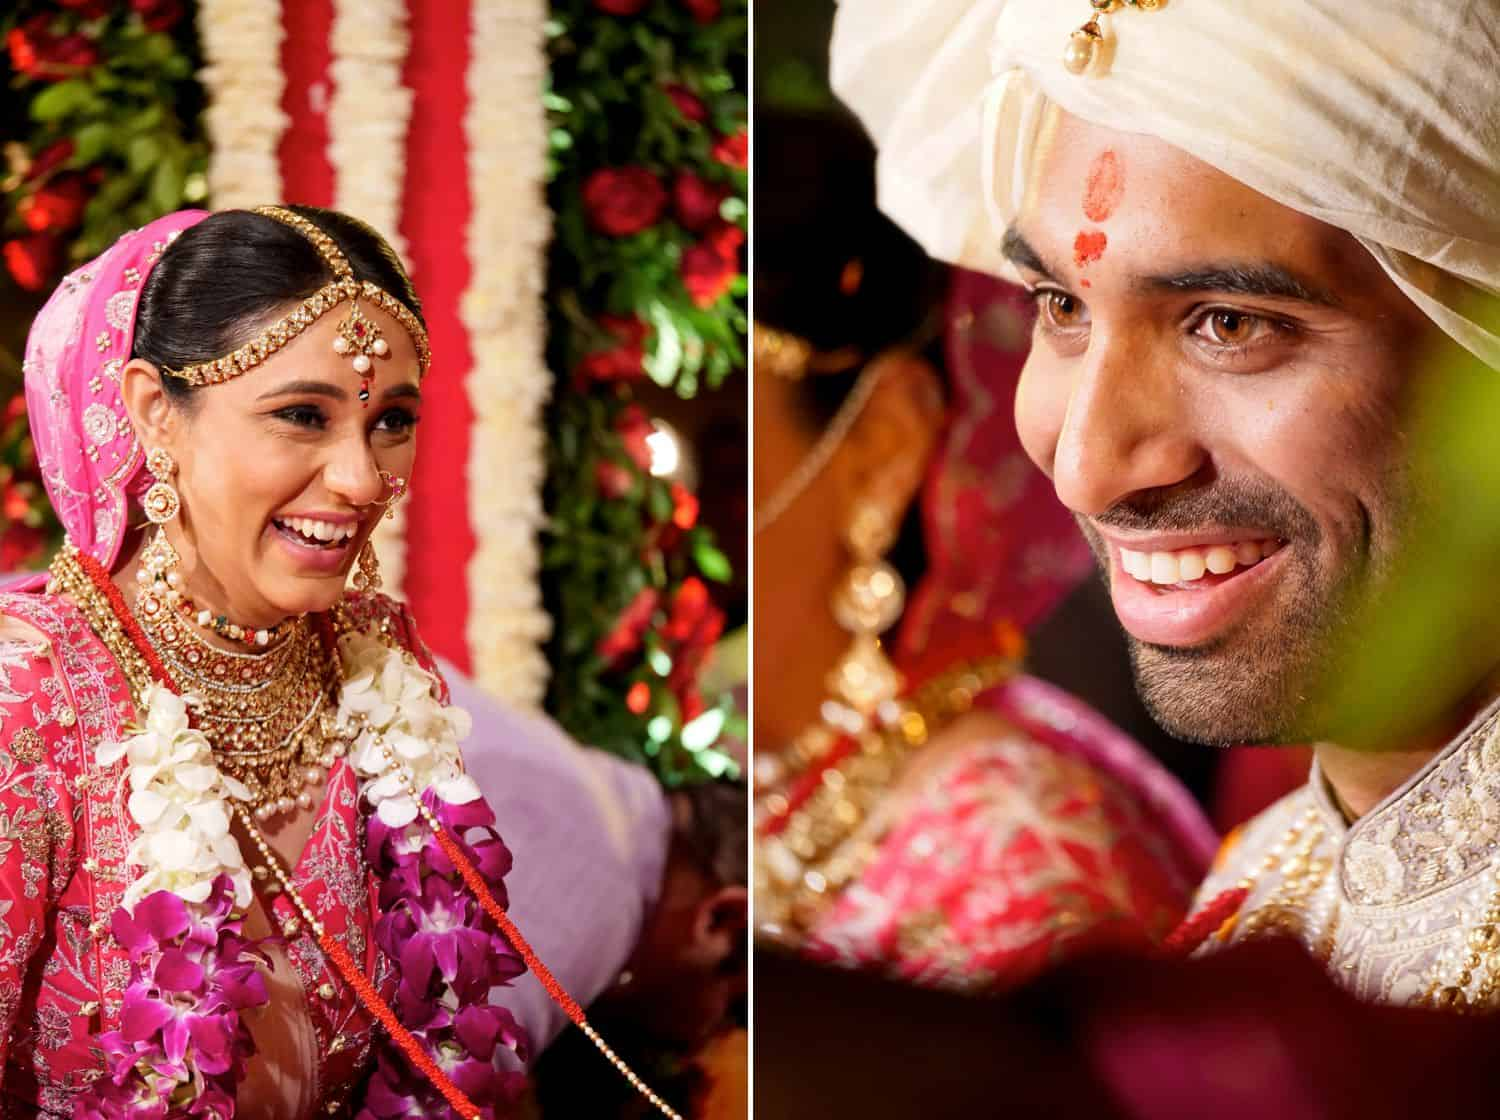 Candid photos of the bride and groom smiling at one another